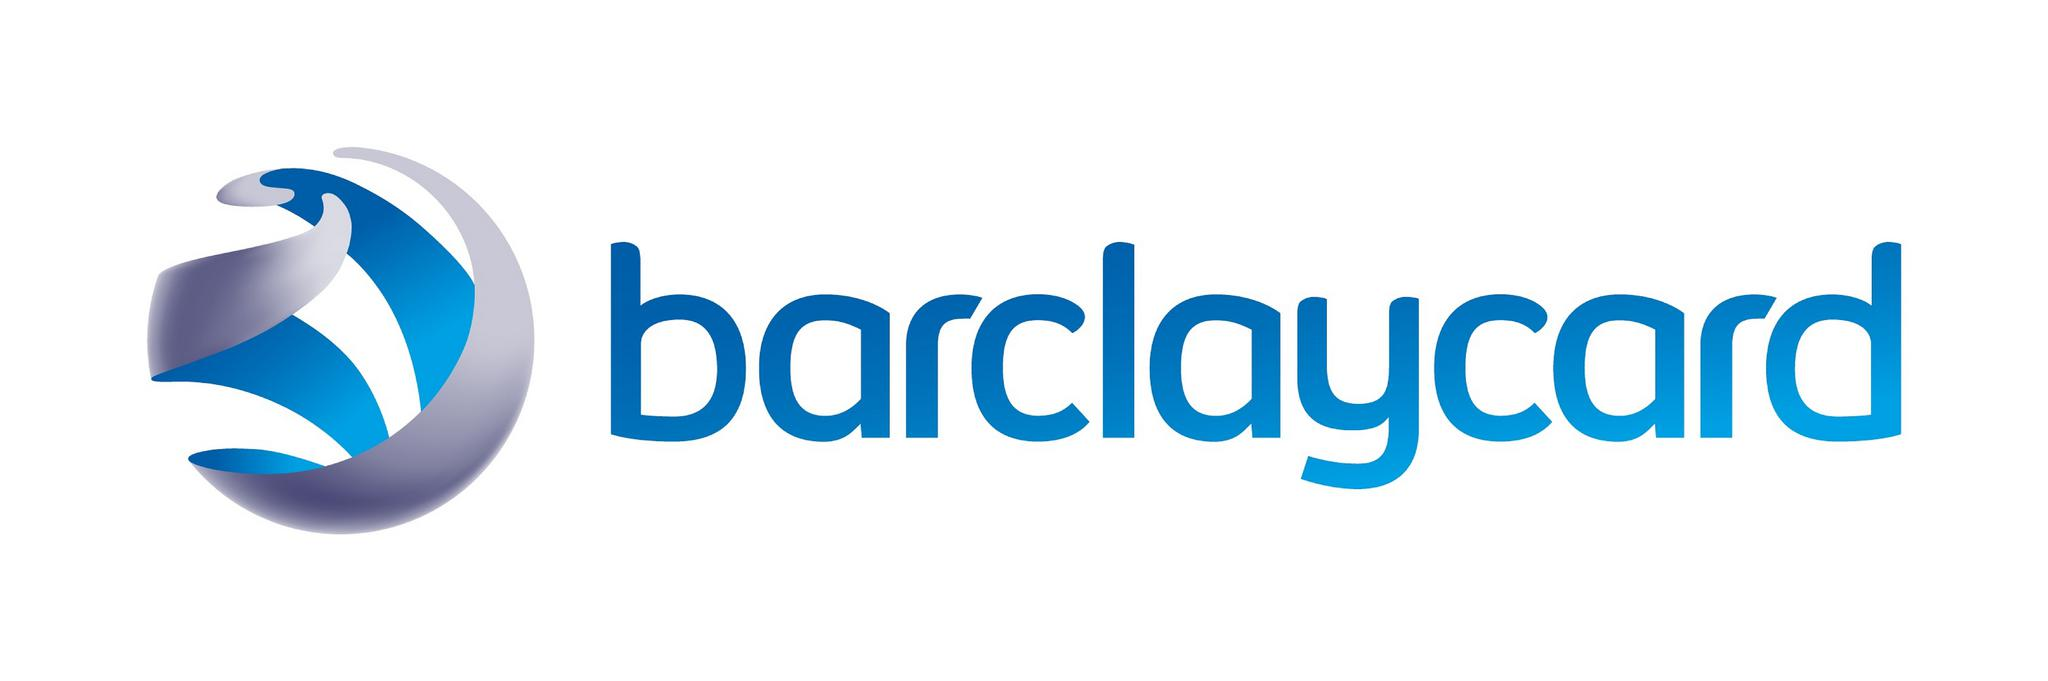 Barclaycard UK